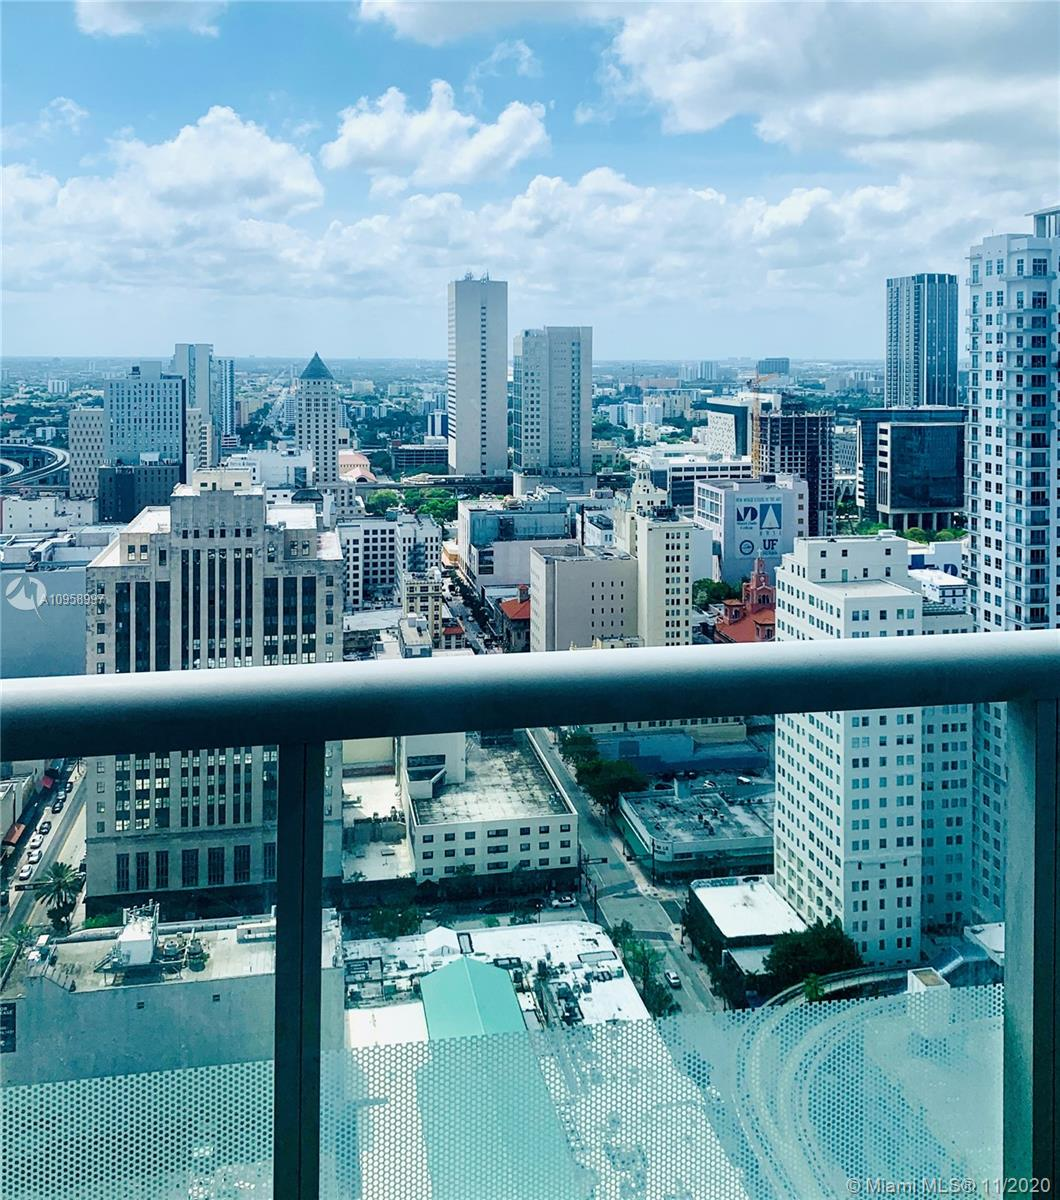 MOTIVATED SELLER, BRING OFFERS! Exceptional property w/more amenities than you can dream of in walkable neighborhood. Floor to ceiling glass doors & windows, spacious balcony, Italian kitchen & walk in closet and amazing views from 35th floor. Excellent location in the heart of Downtown accessible to the metro rail, major expressways and minutes to the beach. Great short or long term investment, developed by mega developer Related Group.